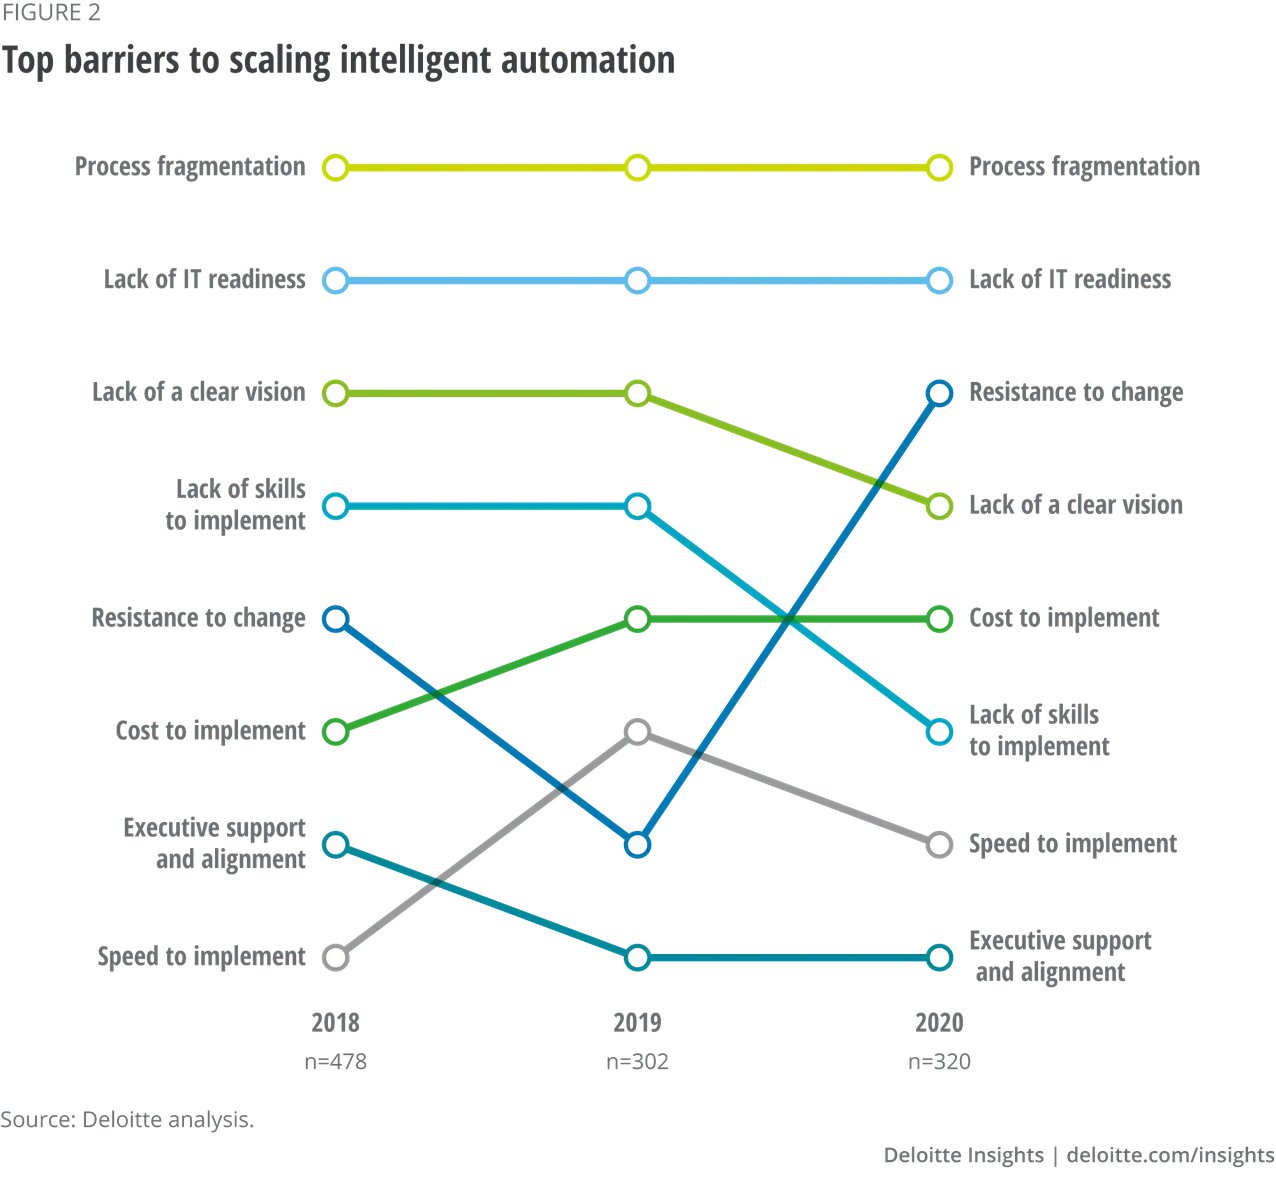 intelligent automation scaling barriers